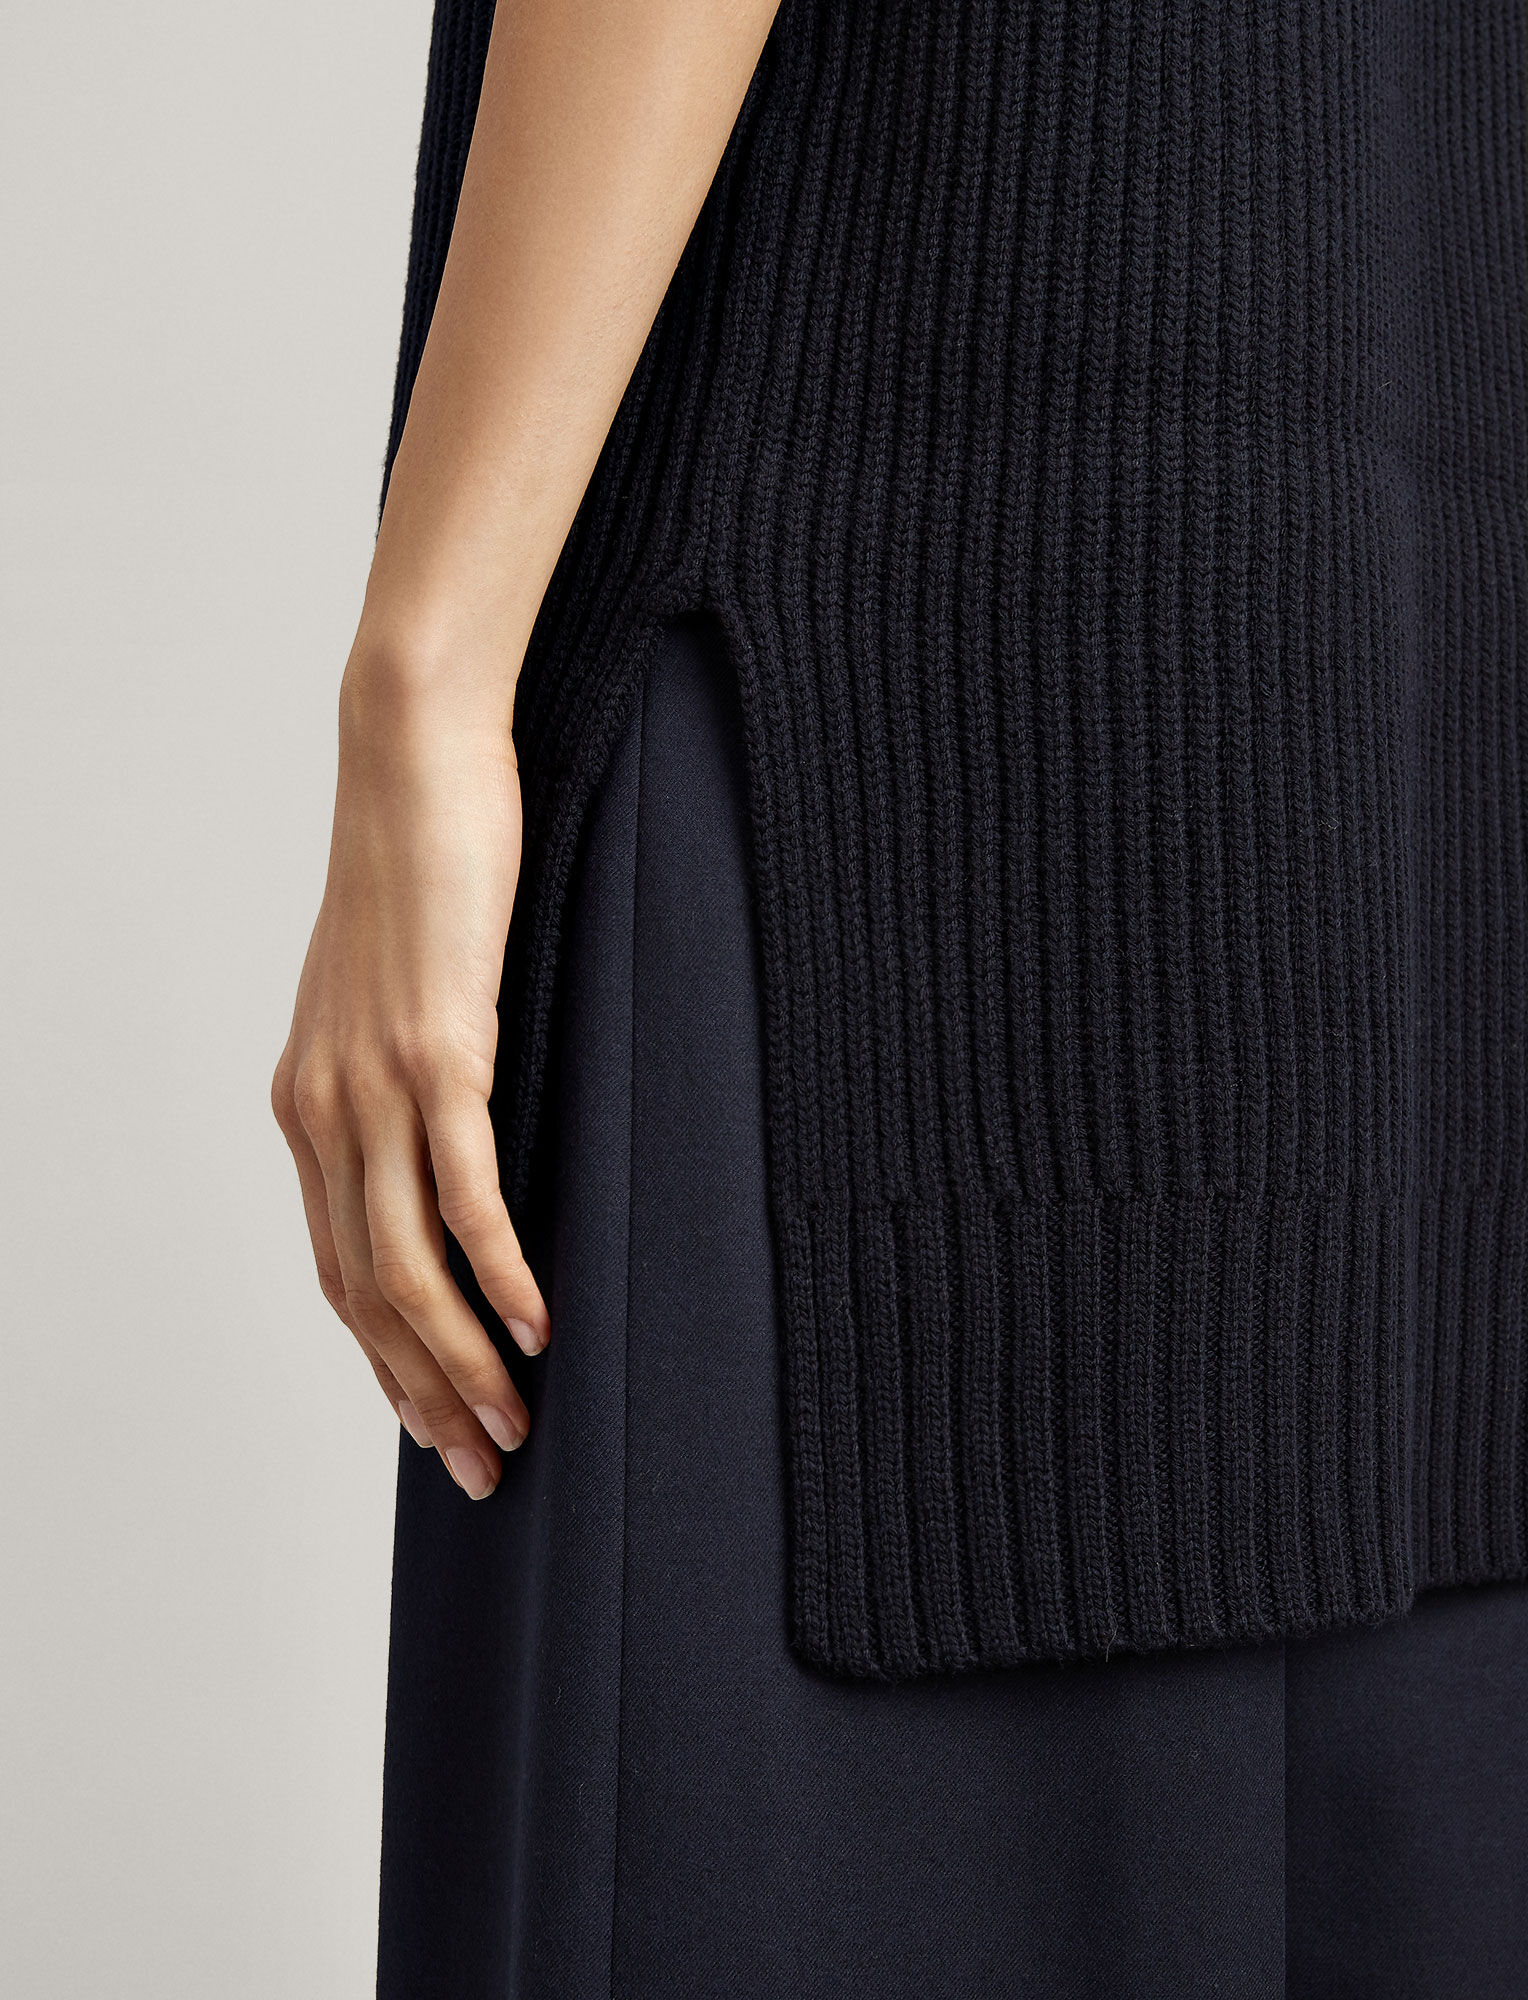 Joseph, Tricot à col montant, in NAVY